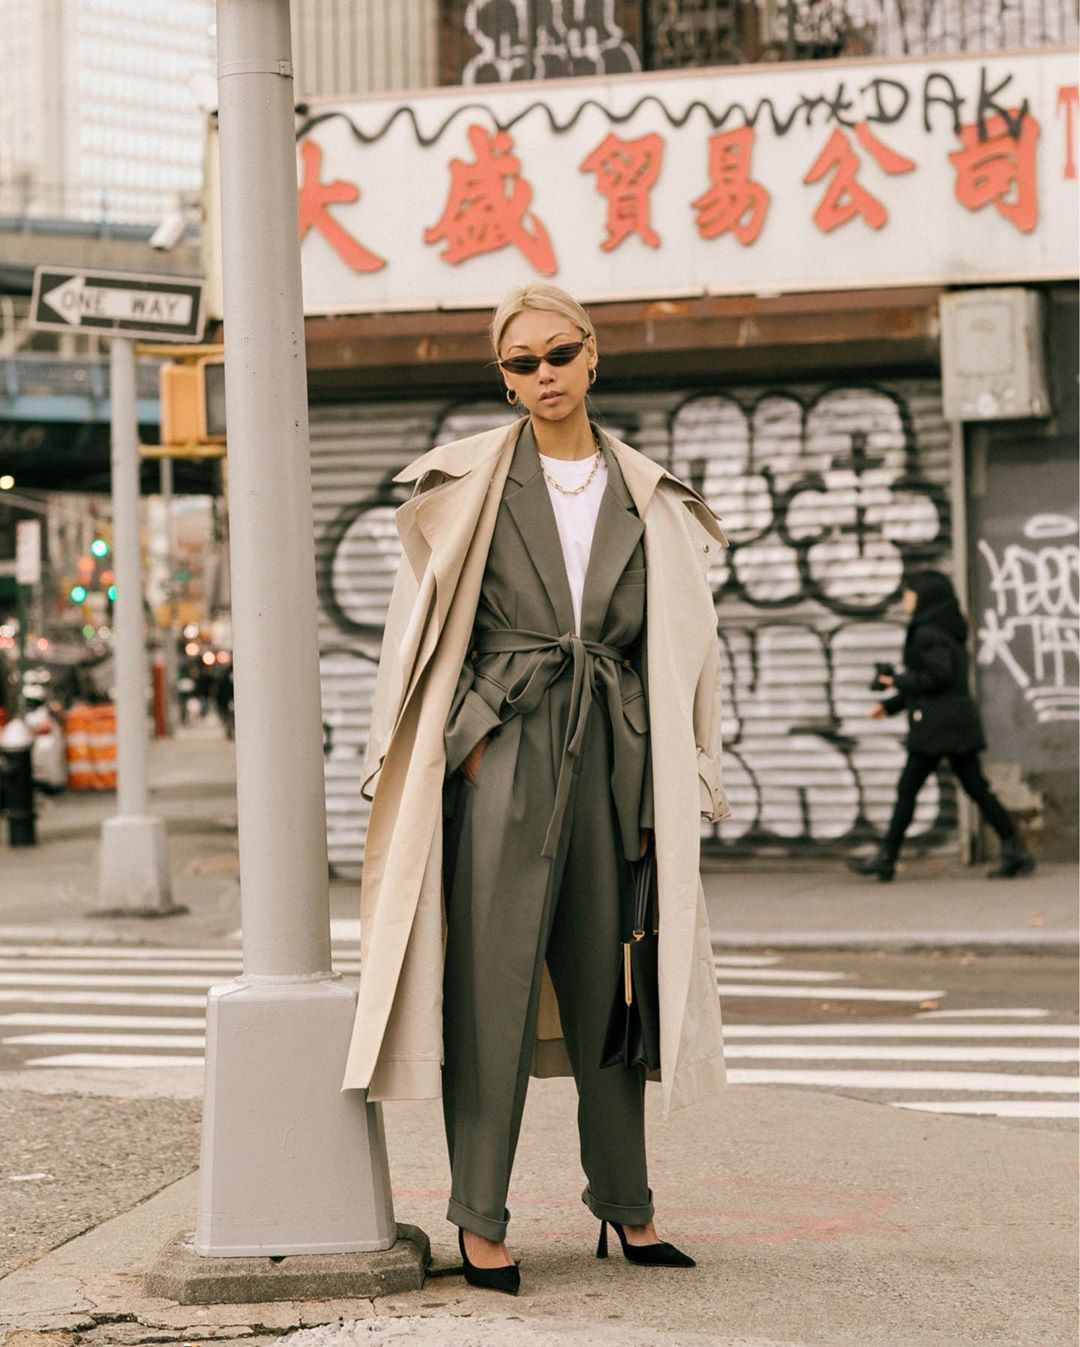 vanessa-hong-trench-over-suit-outfit-instagram